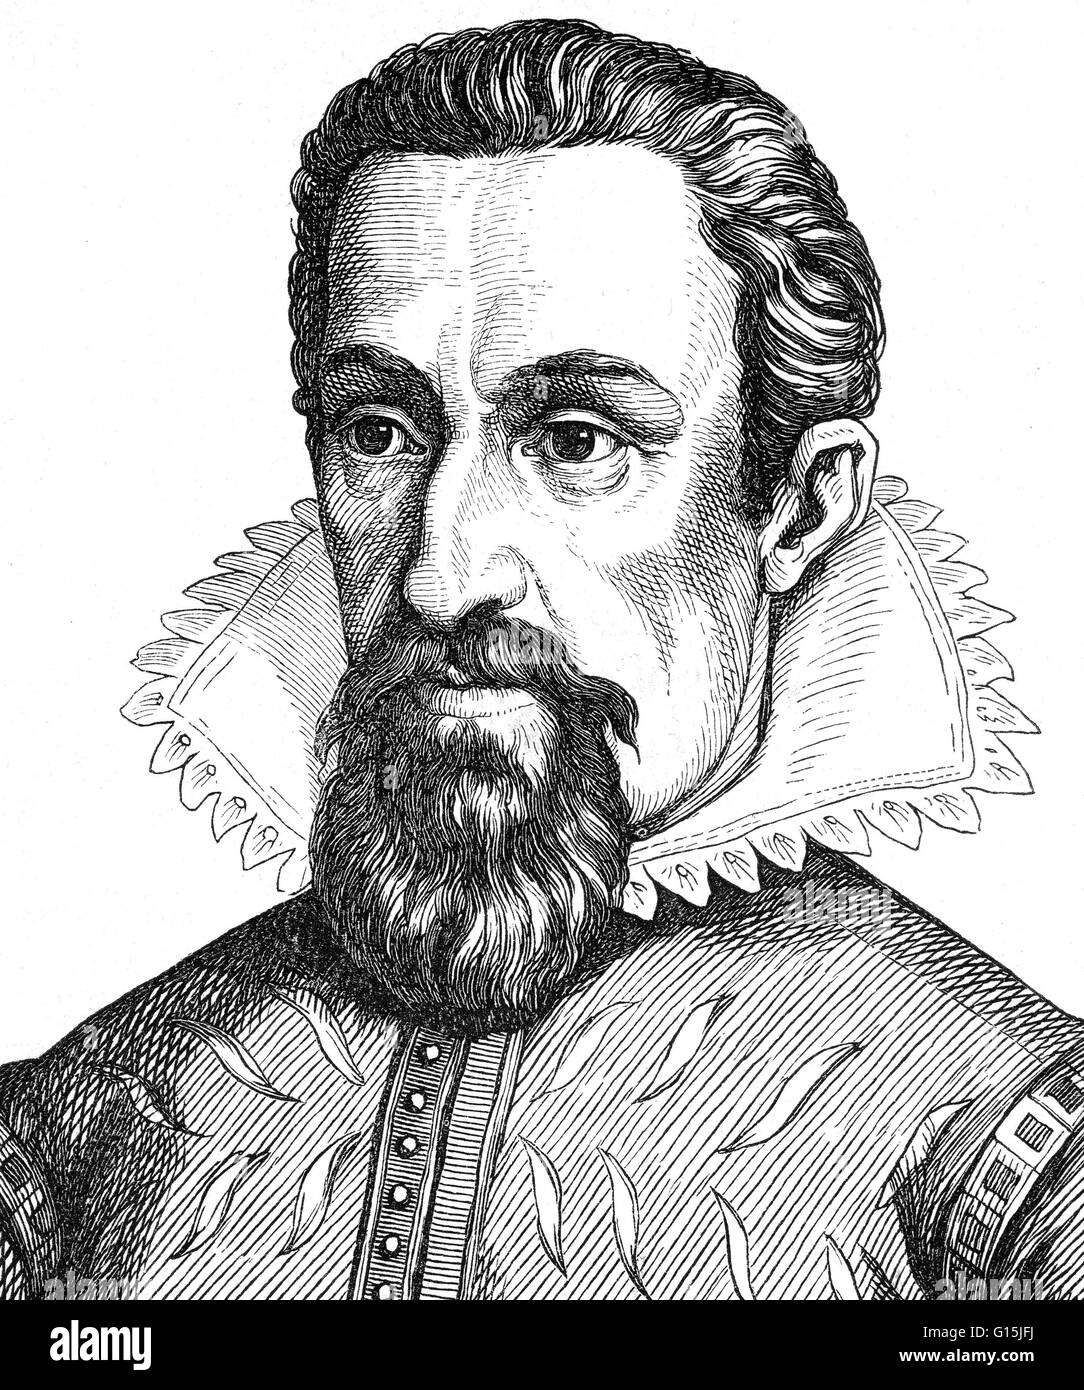 Johannes Kepler (December 27, 1571 - November 15, 1630) was a German mathematician, astronomer and astrologer. A - Stock Image